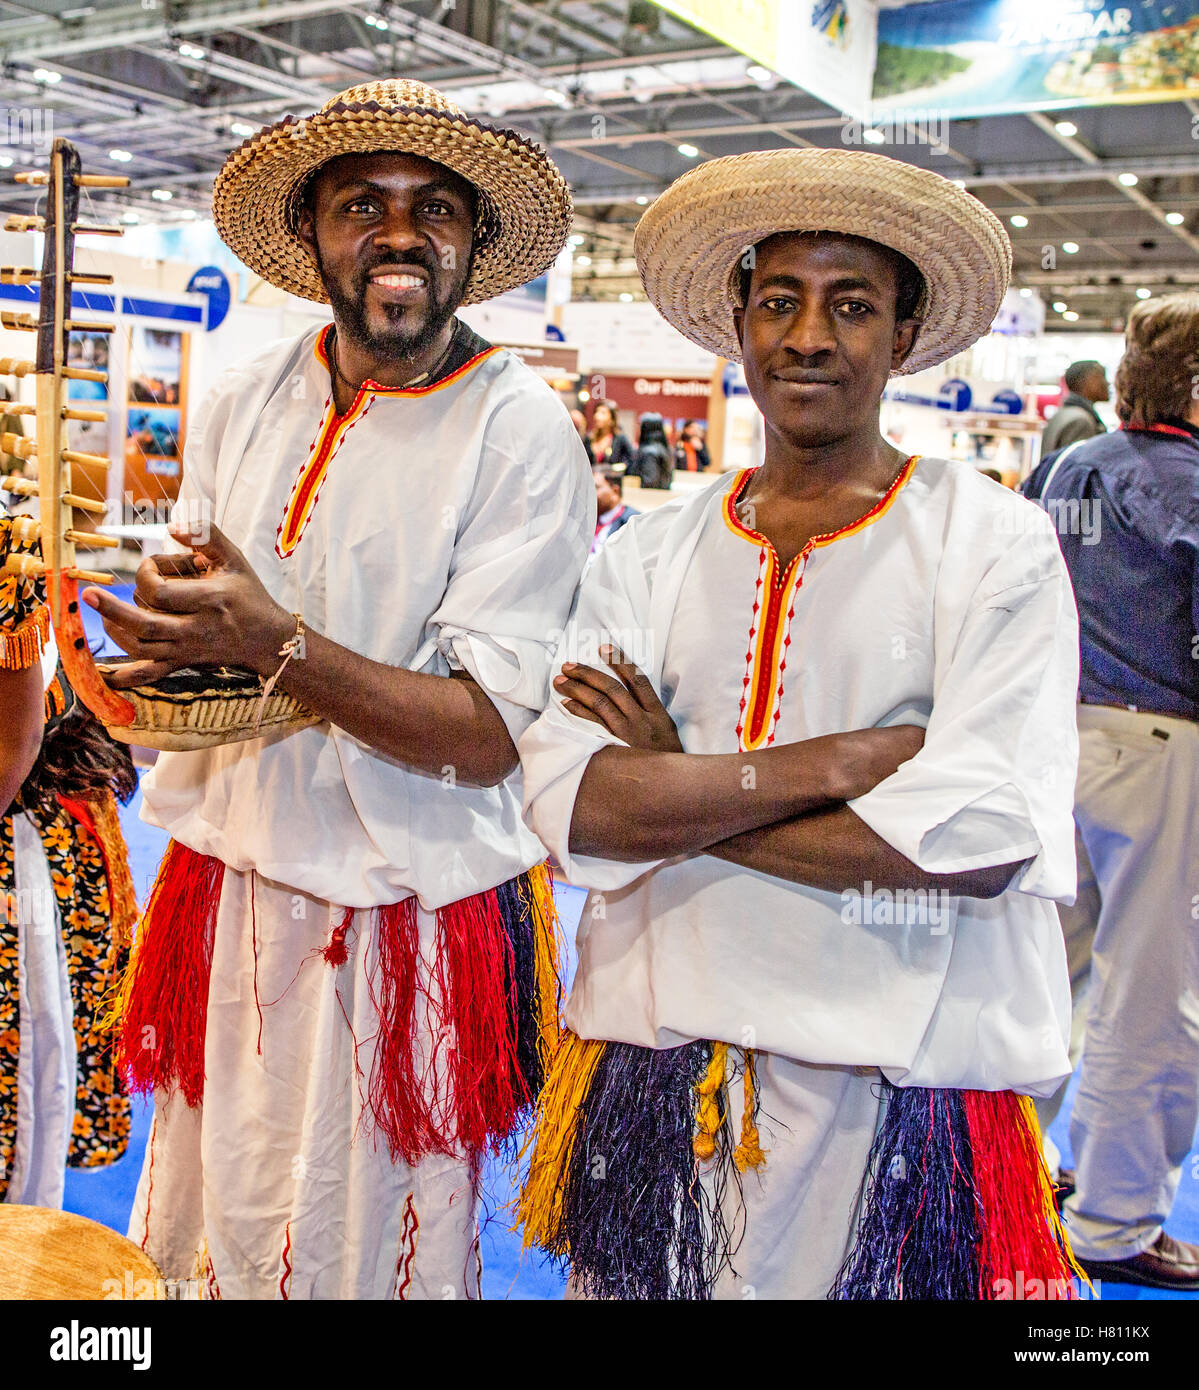 Les hommes en vêtements traditionnels Costa Rica World Travel Market de Londres UK Photo Stock